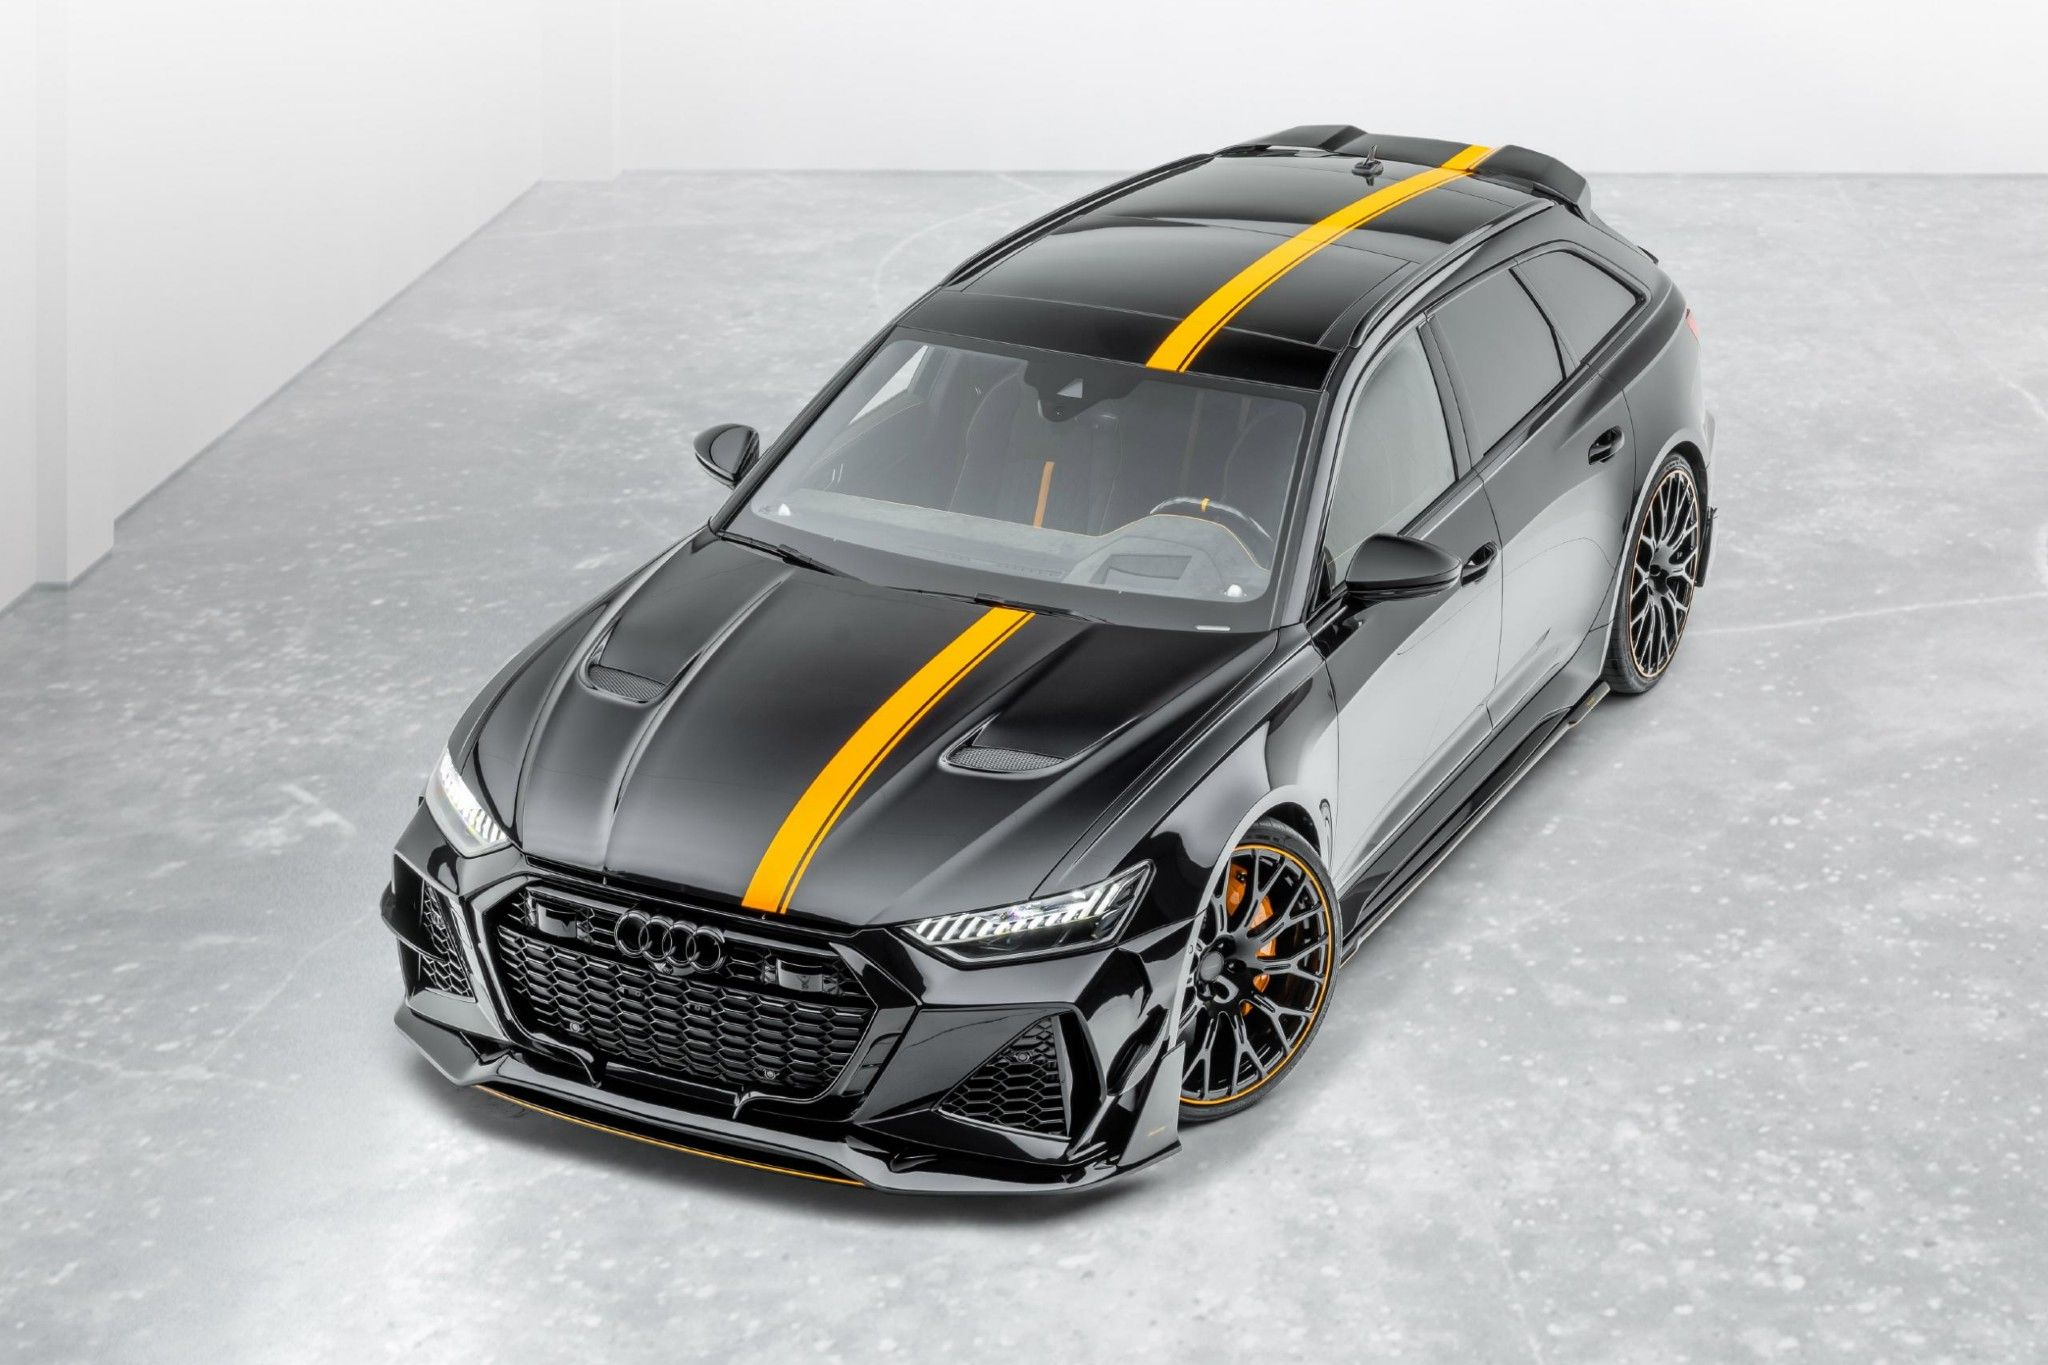 Pin by Datsul on Audi in 2020 Audi rs, Audi rs6, Audi